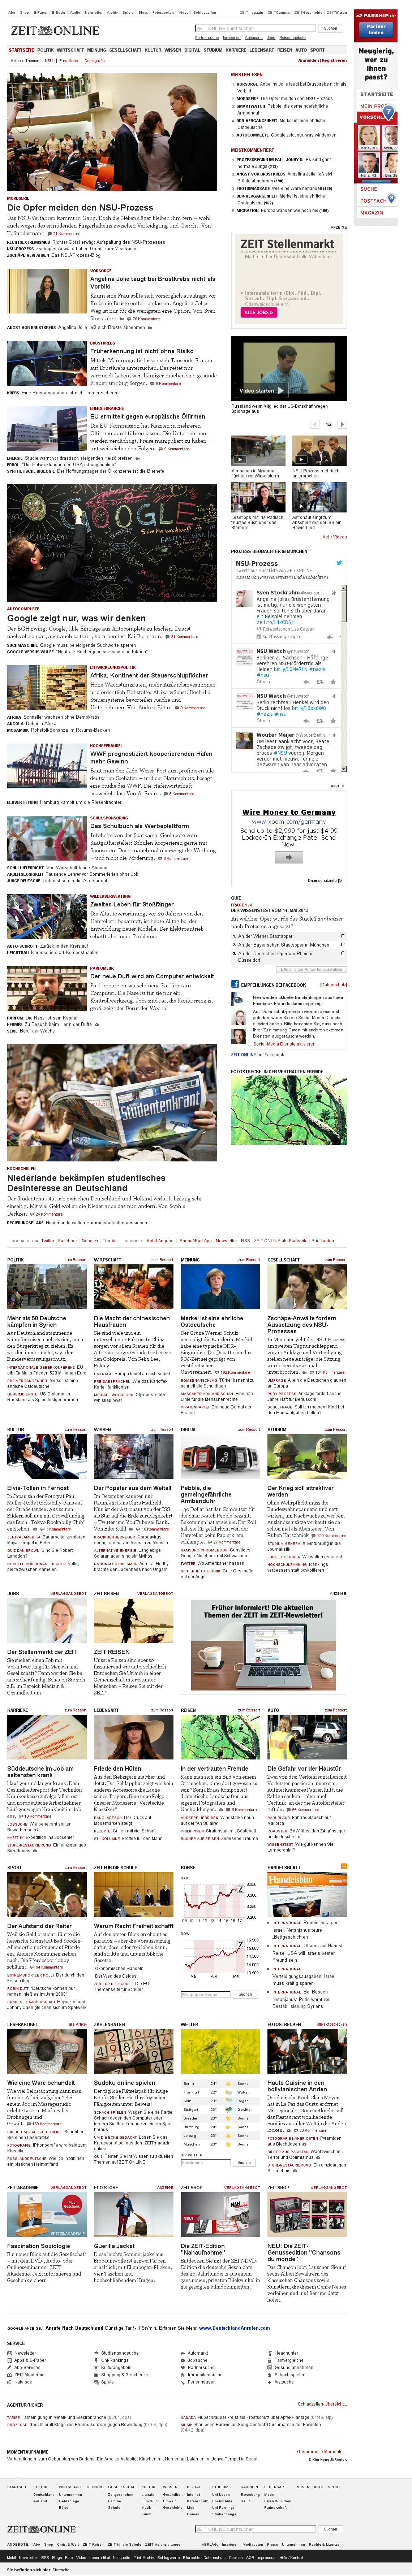 Zeit Online at Wednesday May 15, 2013, 3:26 a.m. UTC